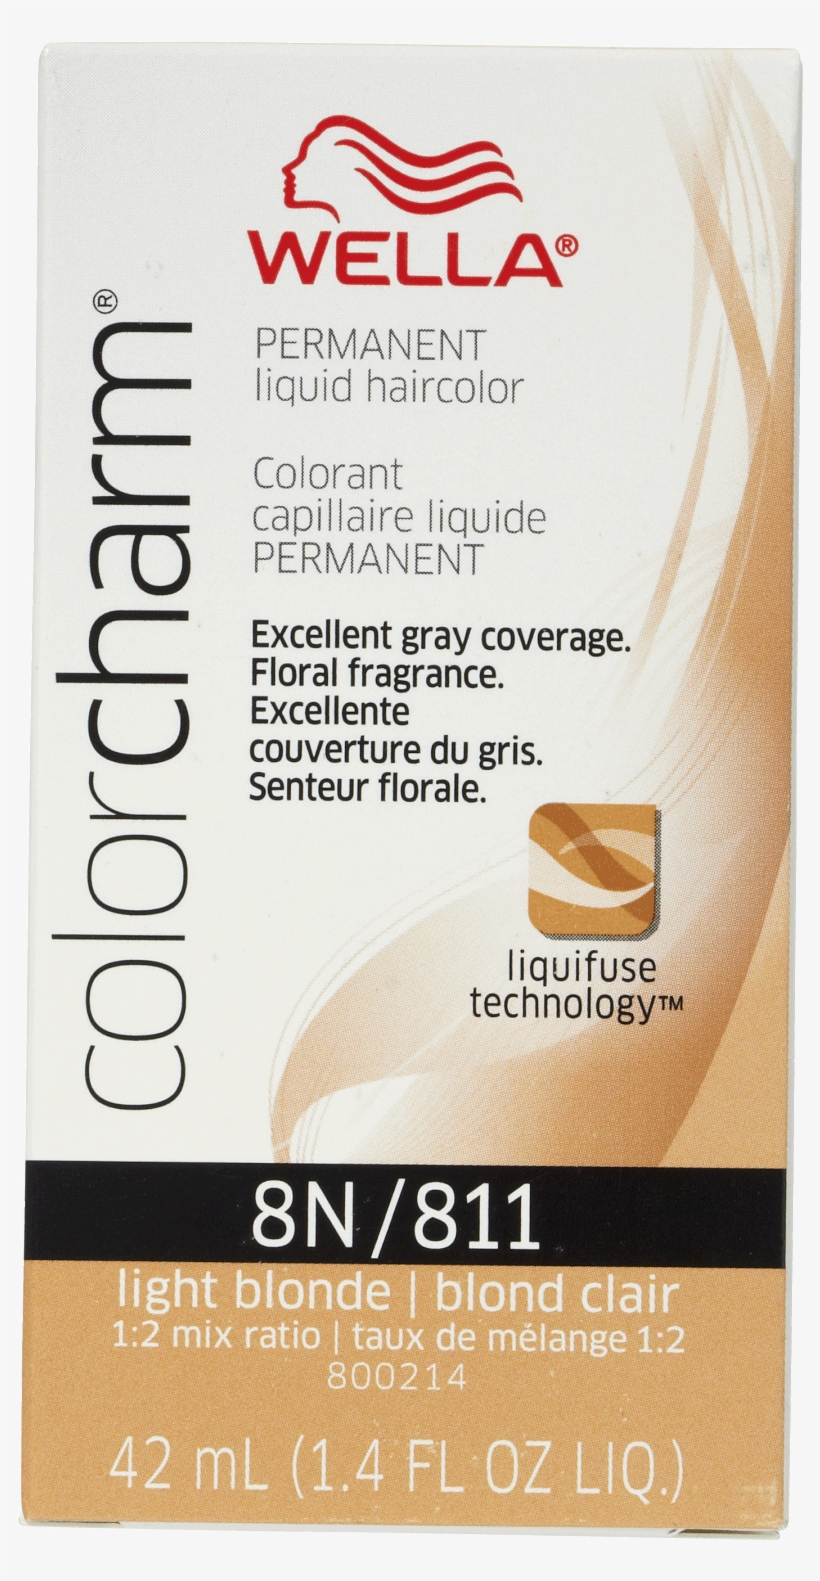 Wella Color Charm Liquid Permanent Hair Colors - Wella Colour Charm Liquid Permanent Hair Colour, transparent png #373407